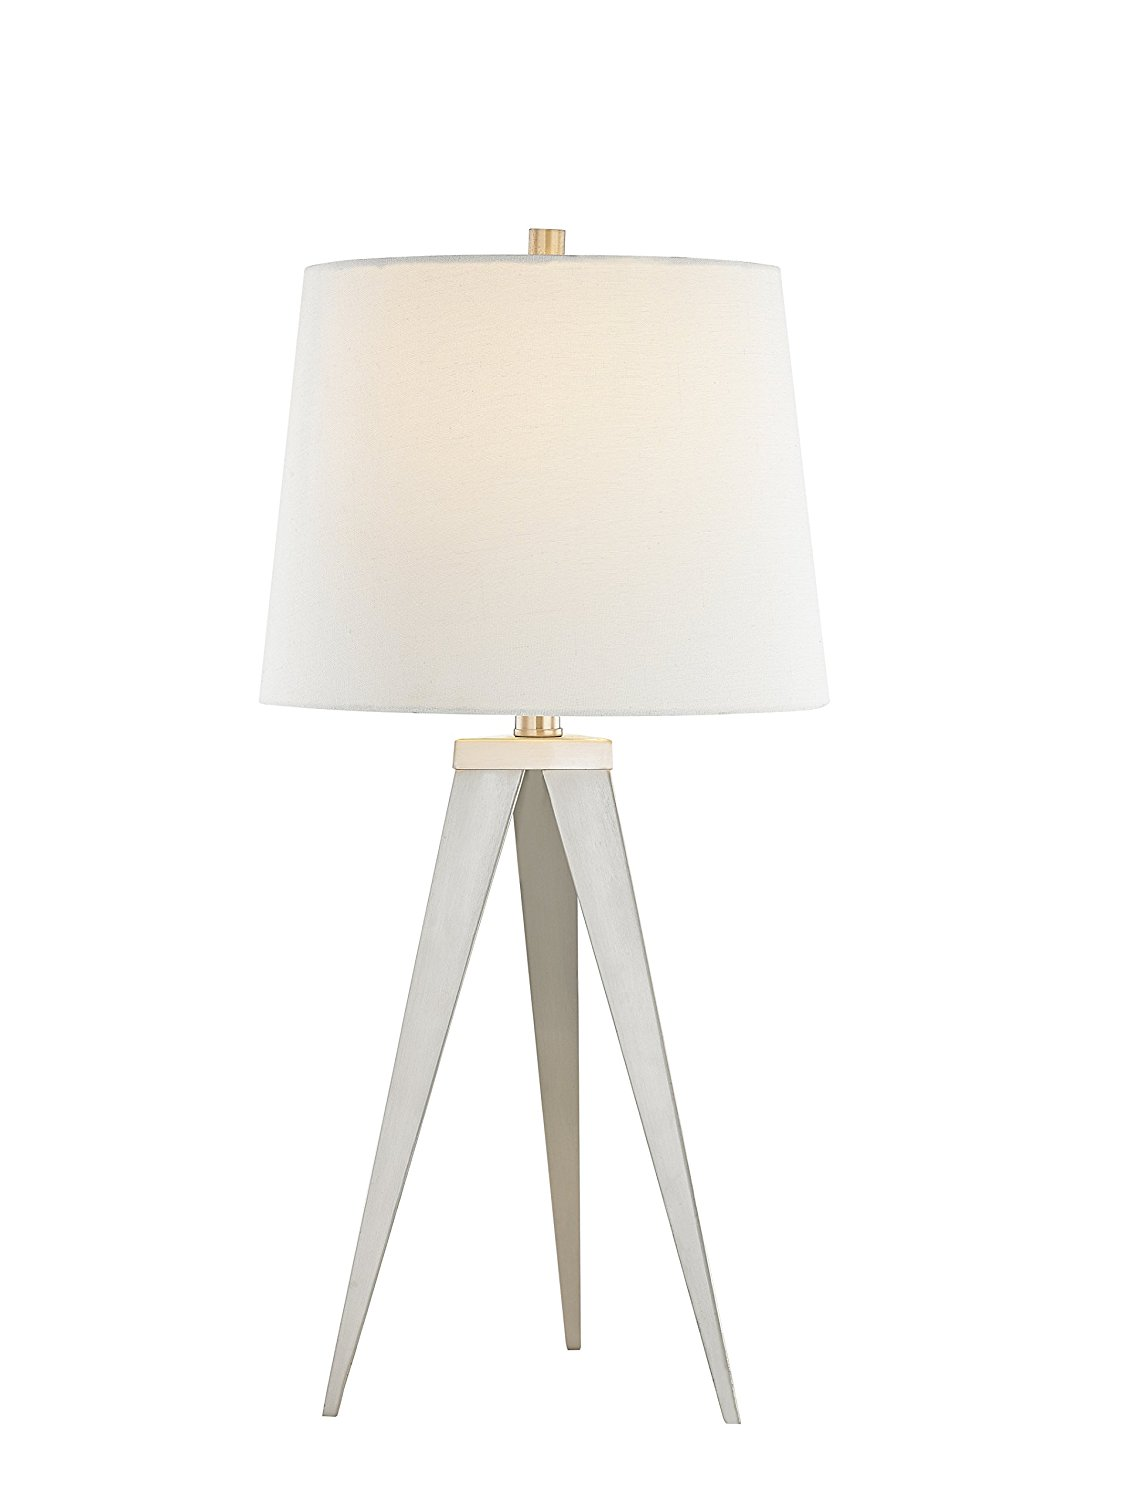 Table Lamp Base Cheap Table Lamp Base Find Table Lamp Base Deals On Line At